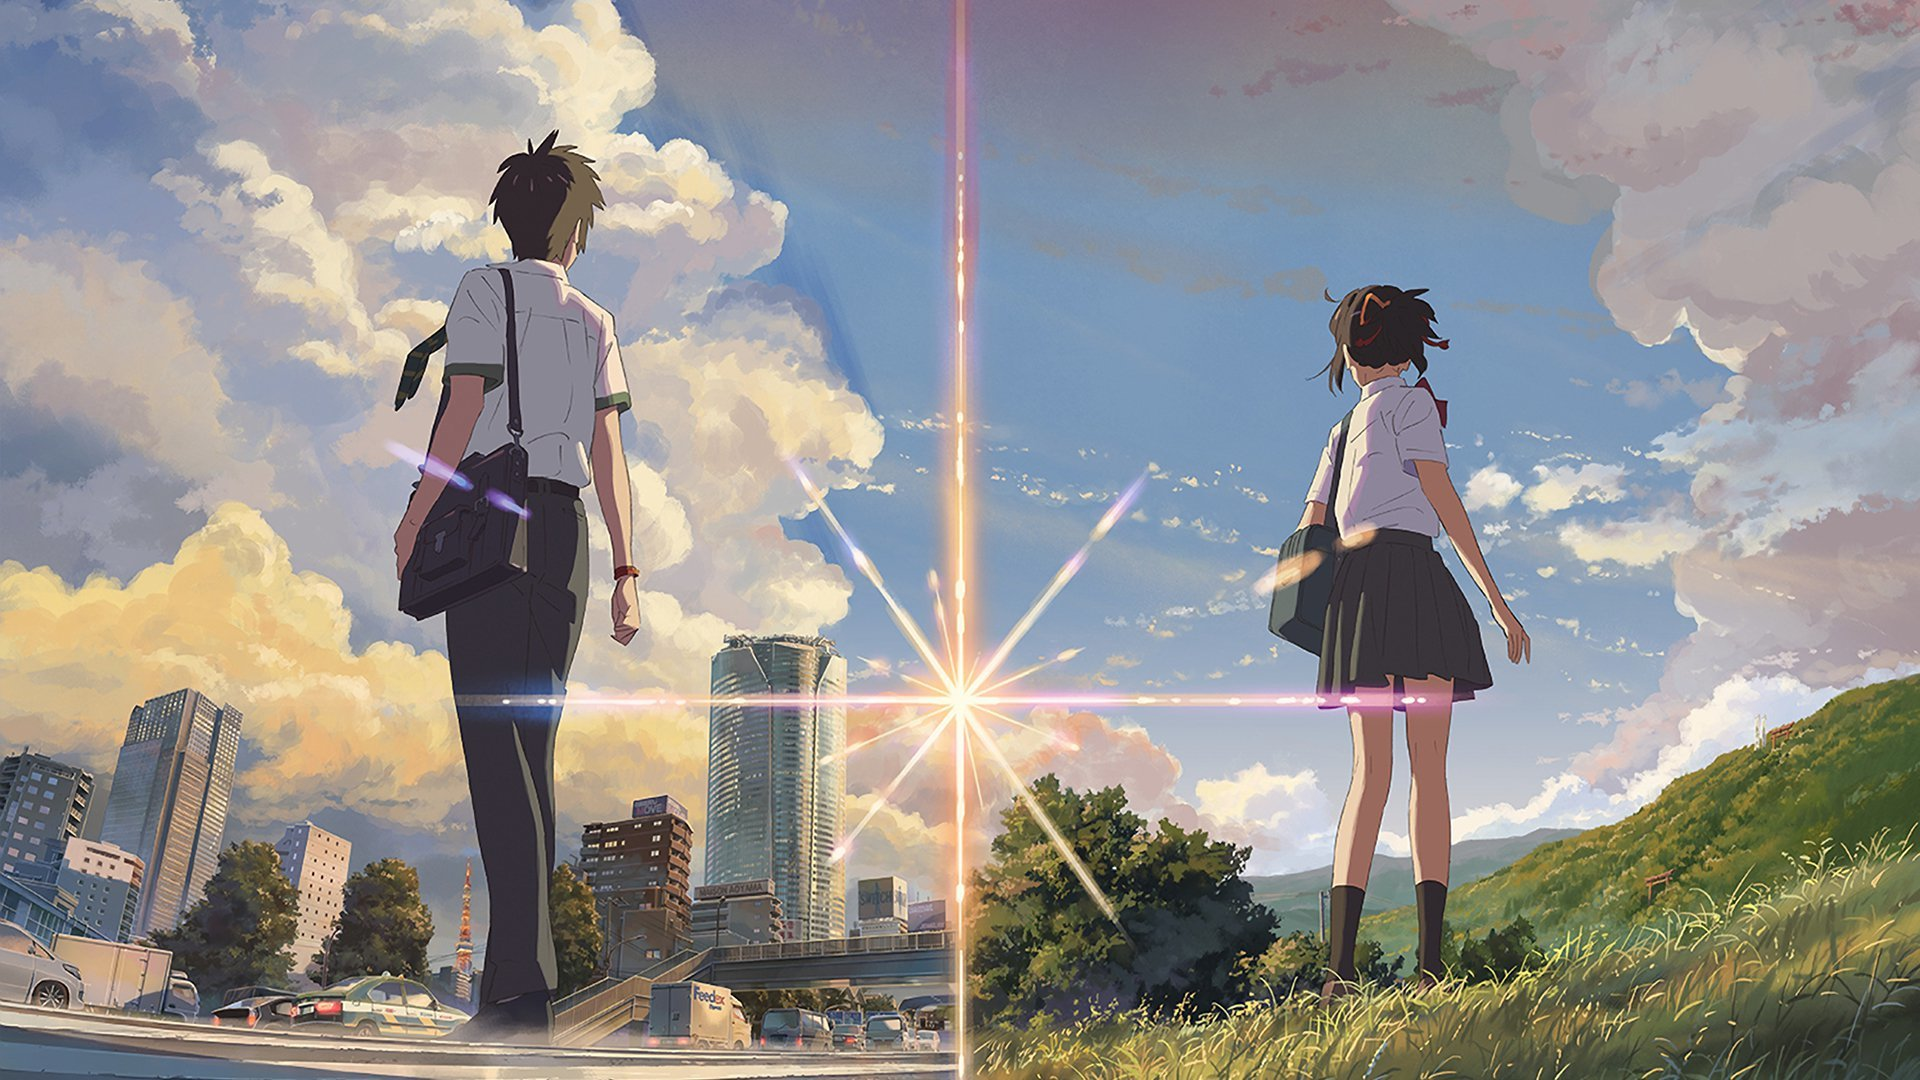 your name adaptation